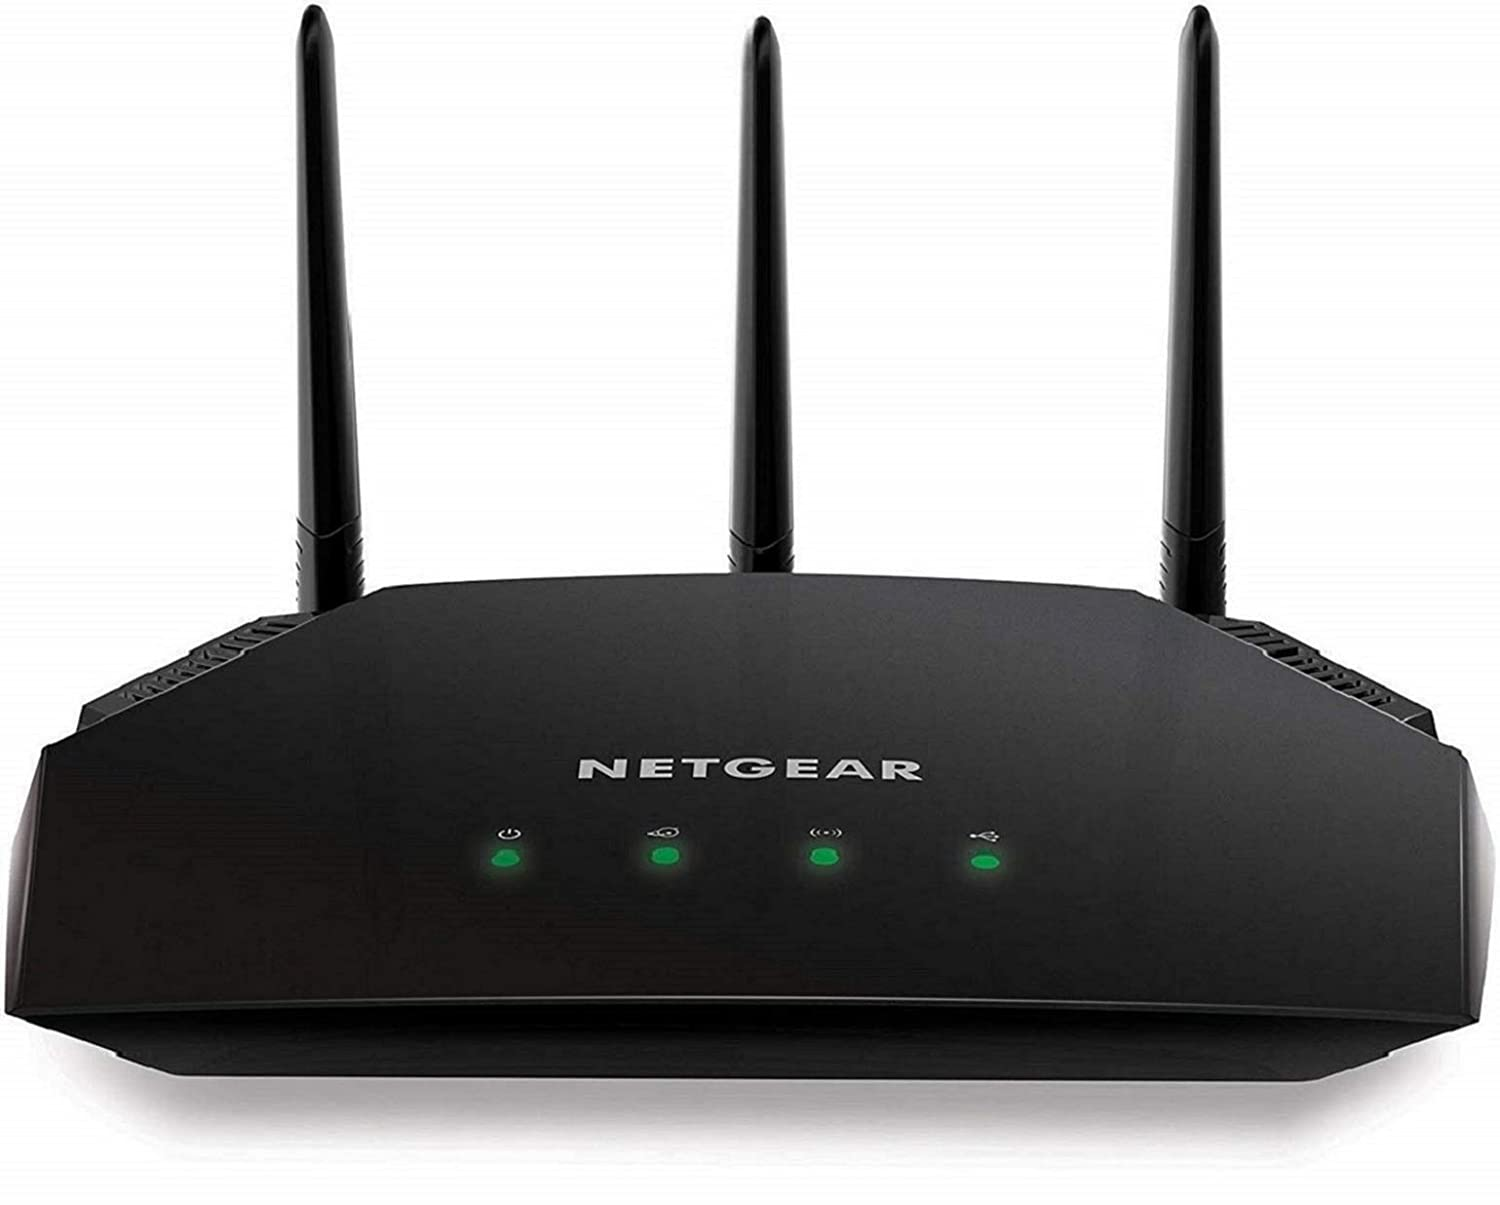 Netgear R6350 AC1750 Smart WiFi Router